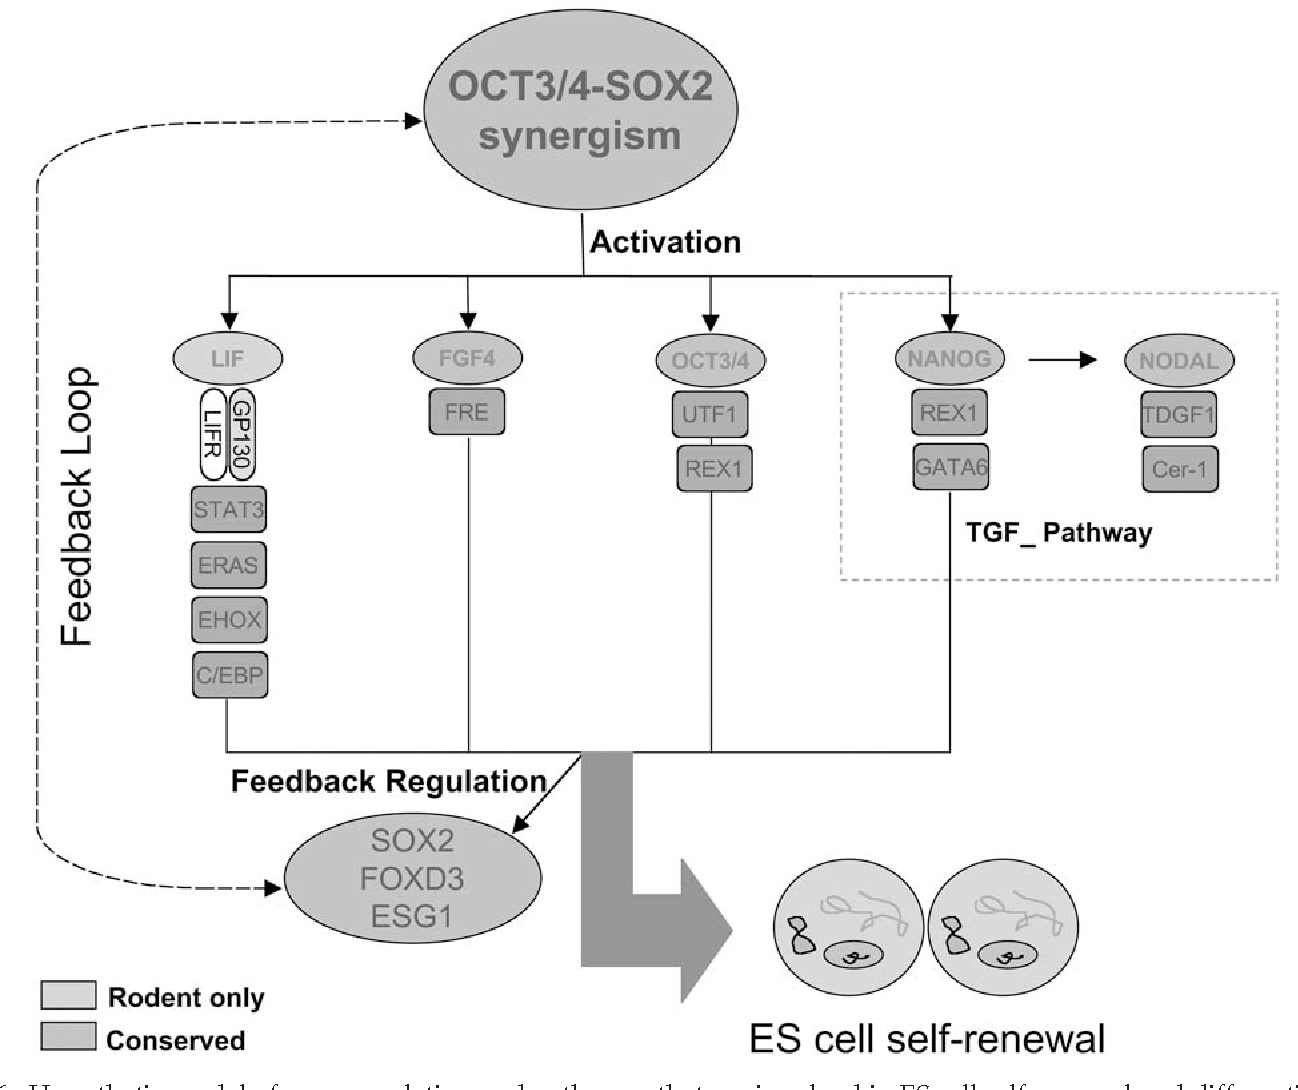 Fig. 6. Hypothetic model of gene regulation and pathways that are involved in ES cell self-renewal and differentiation.